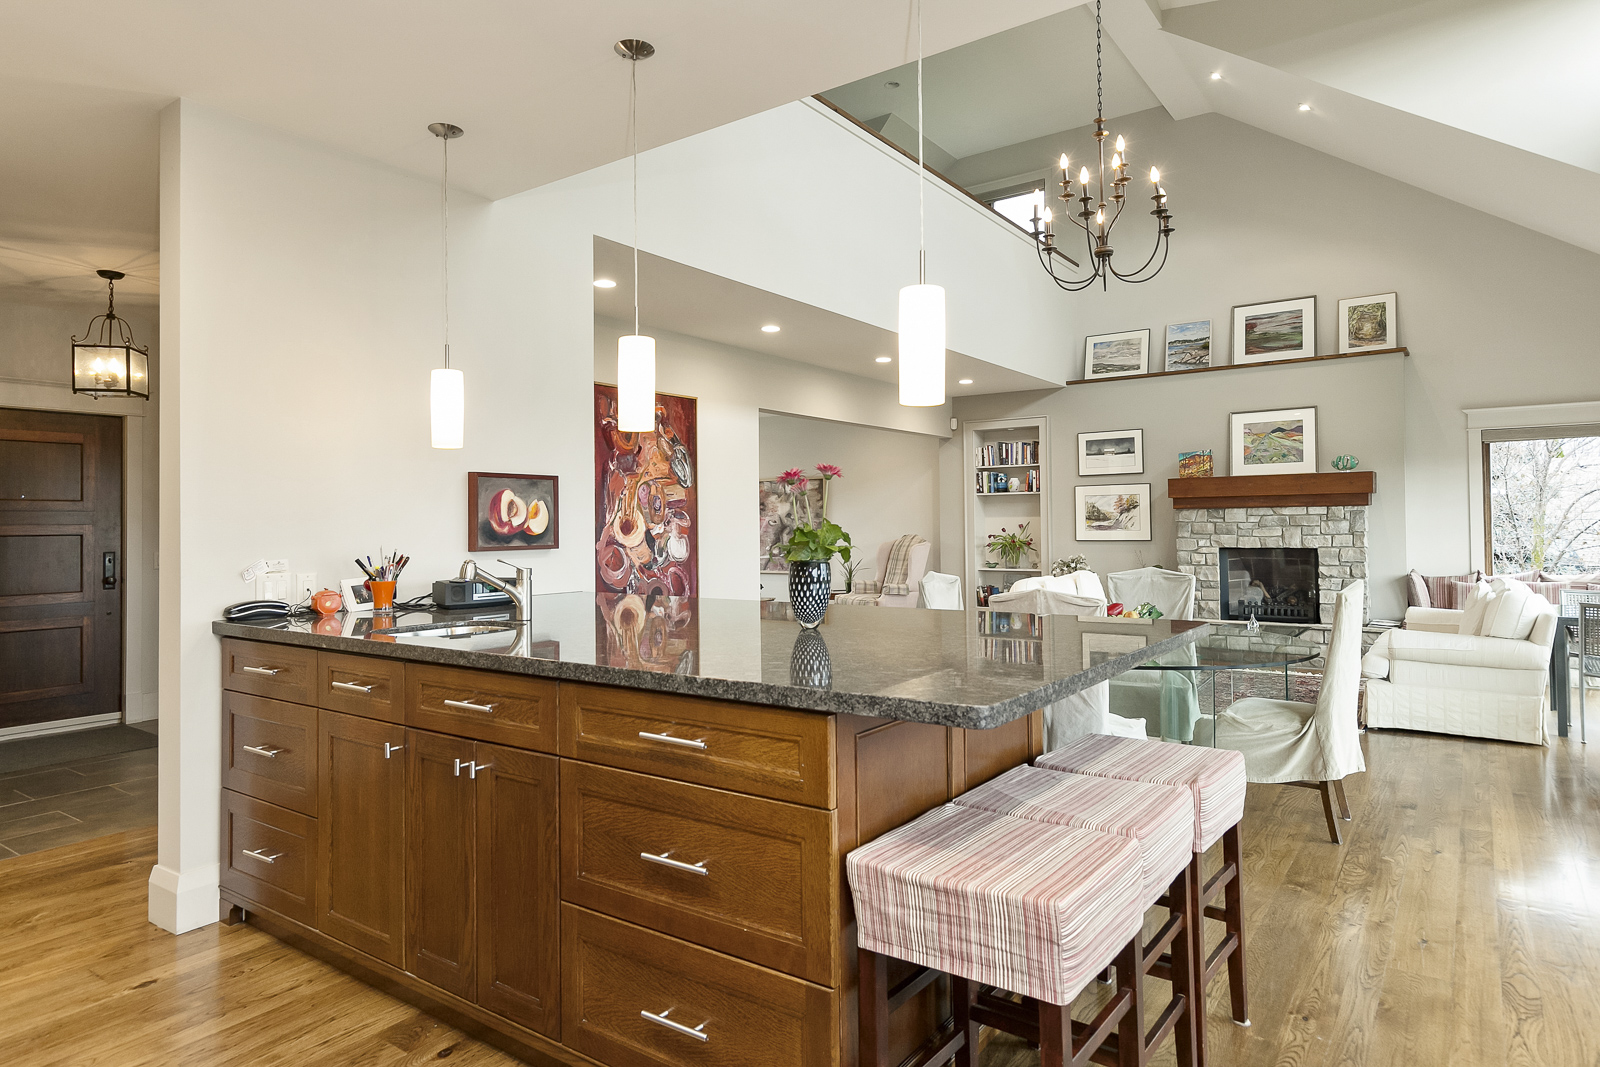 30-Oslerview-Drive_Interiors_Web-14.jpg